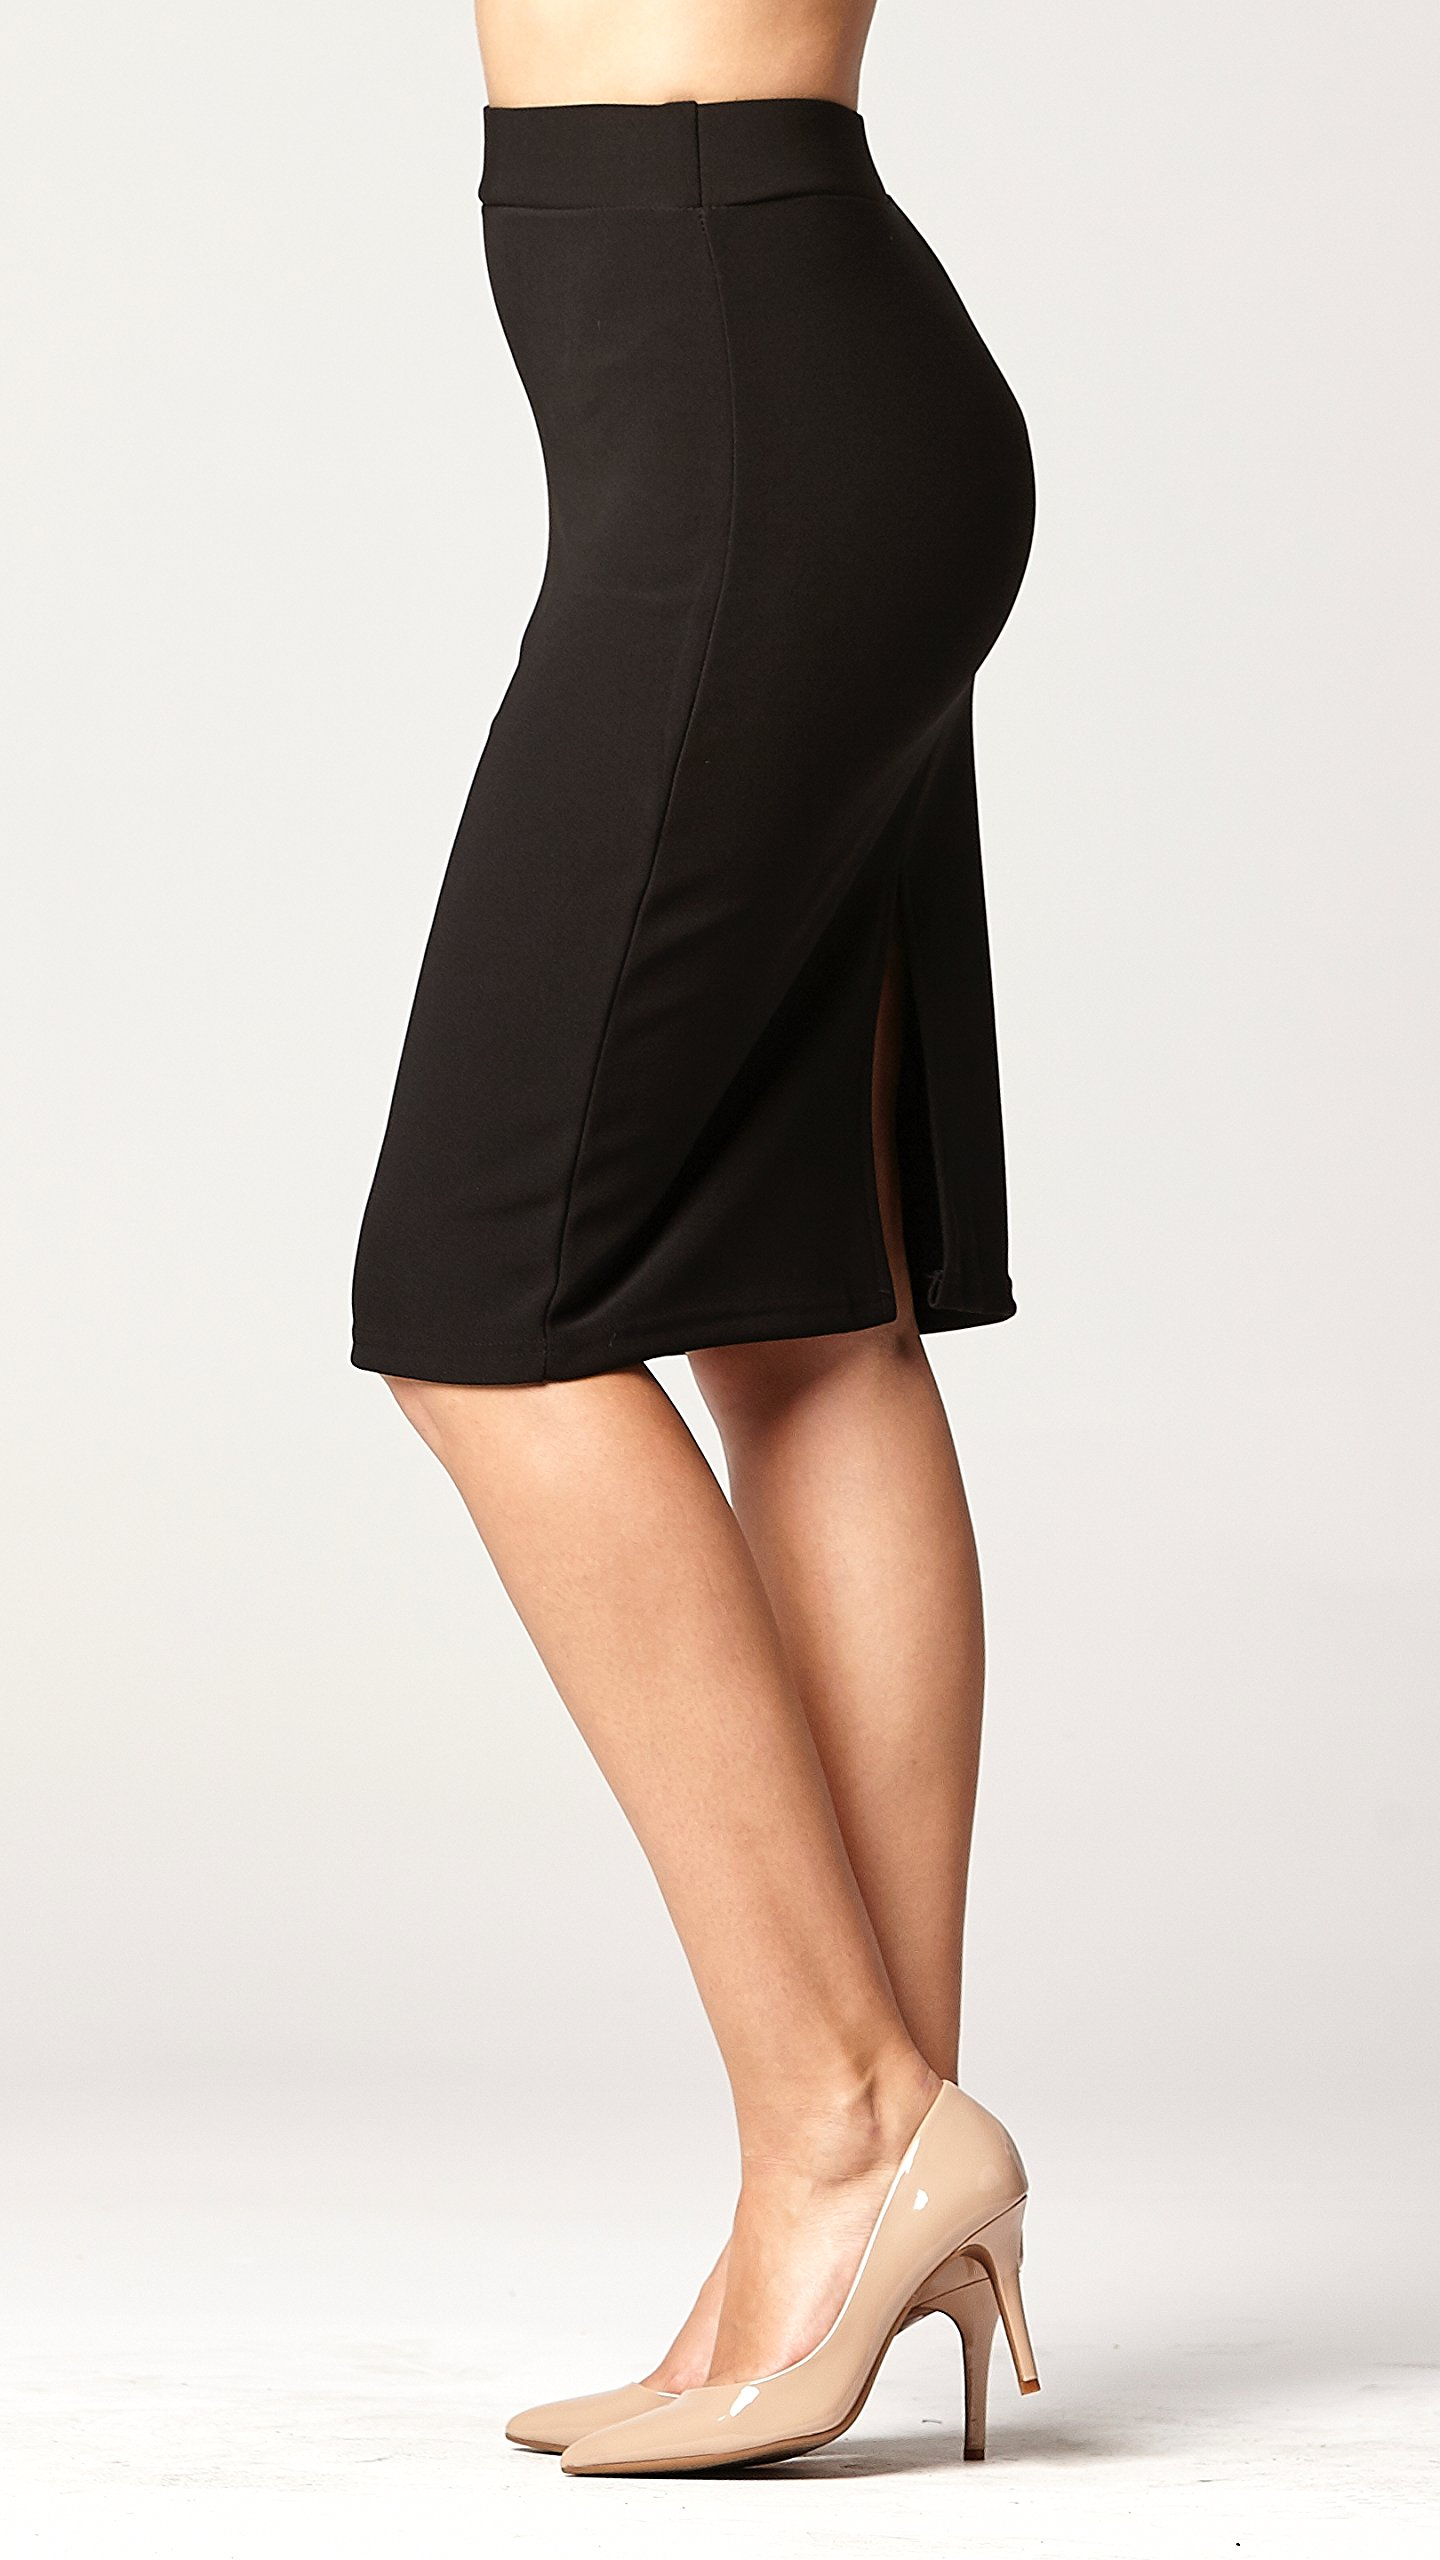 Conceited Premium Stretch Pencil Skirt - 10 Colors - by (Small, Black) by Conceited (Image #3)